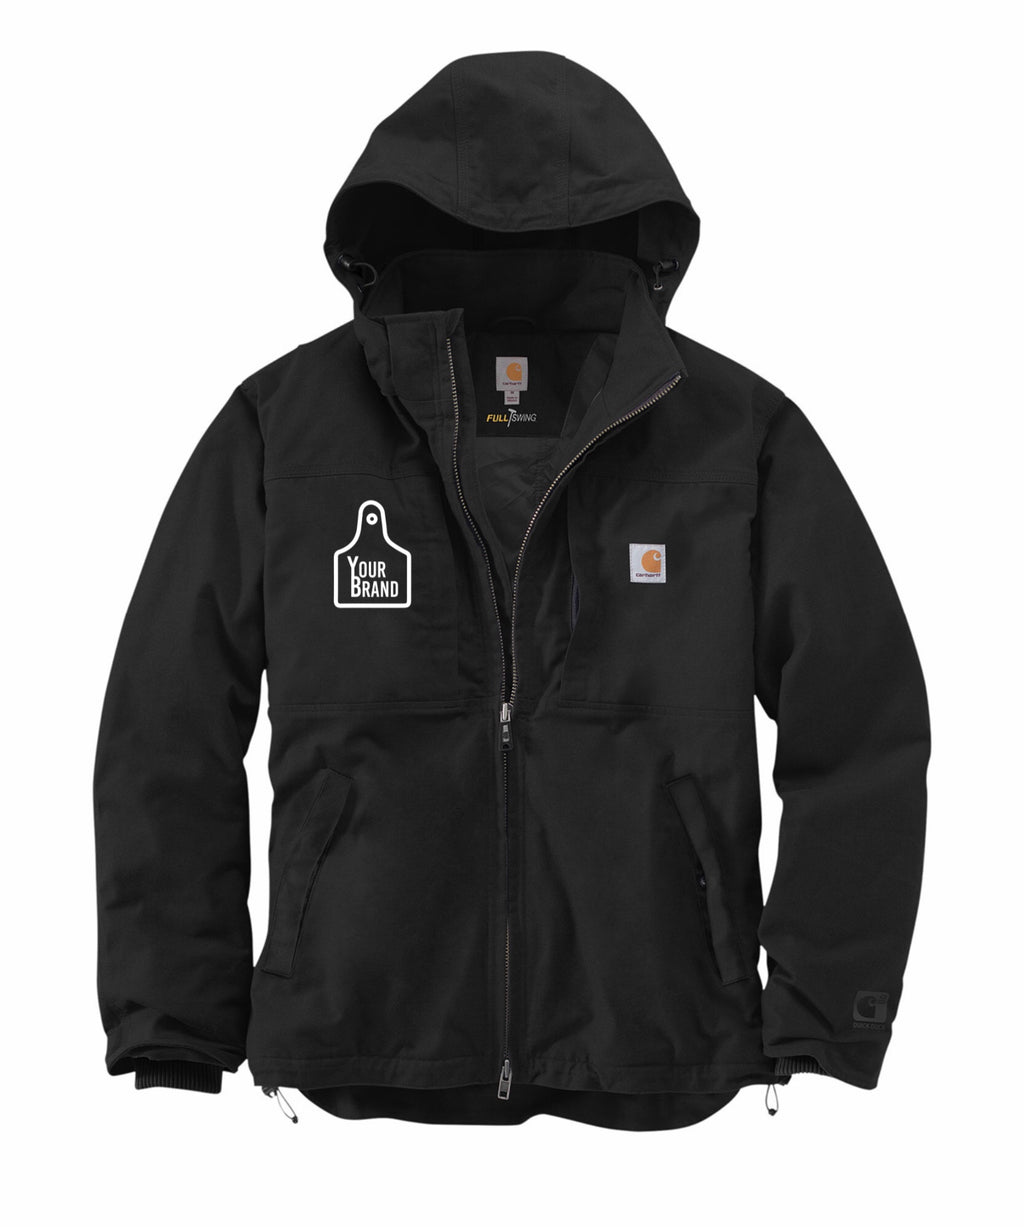 Cow Tag Carhartt Full Swing Cryder Jacket